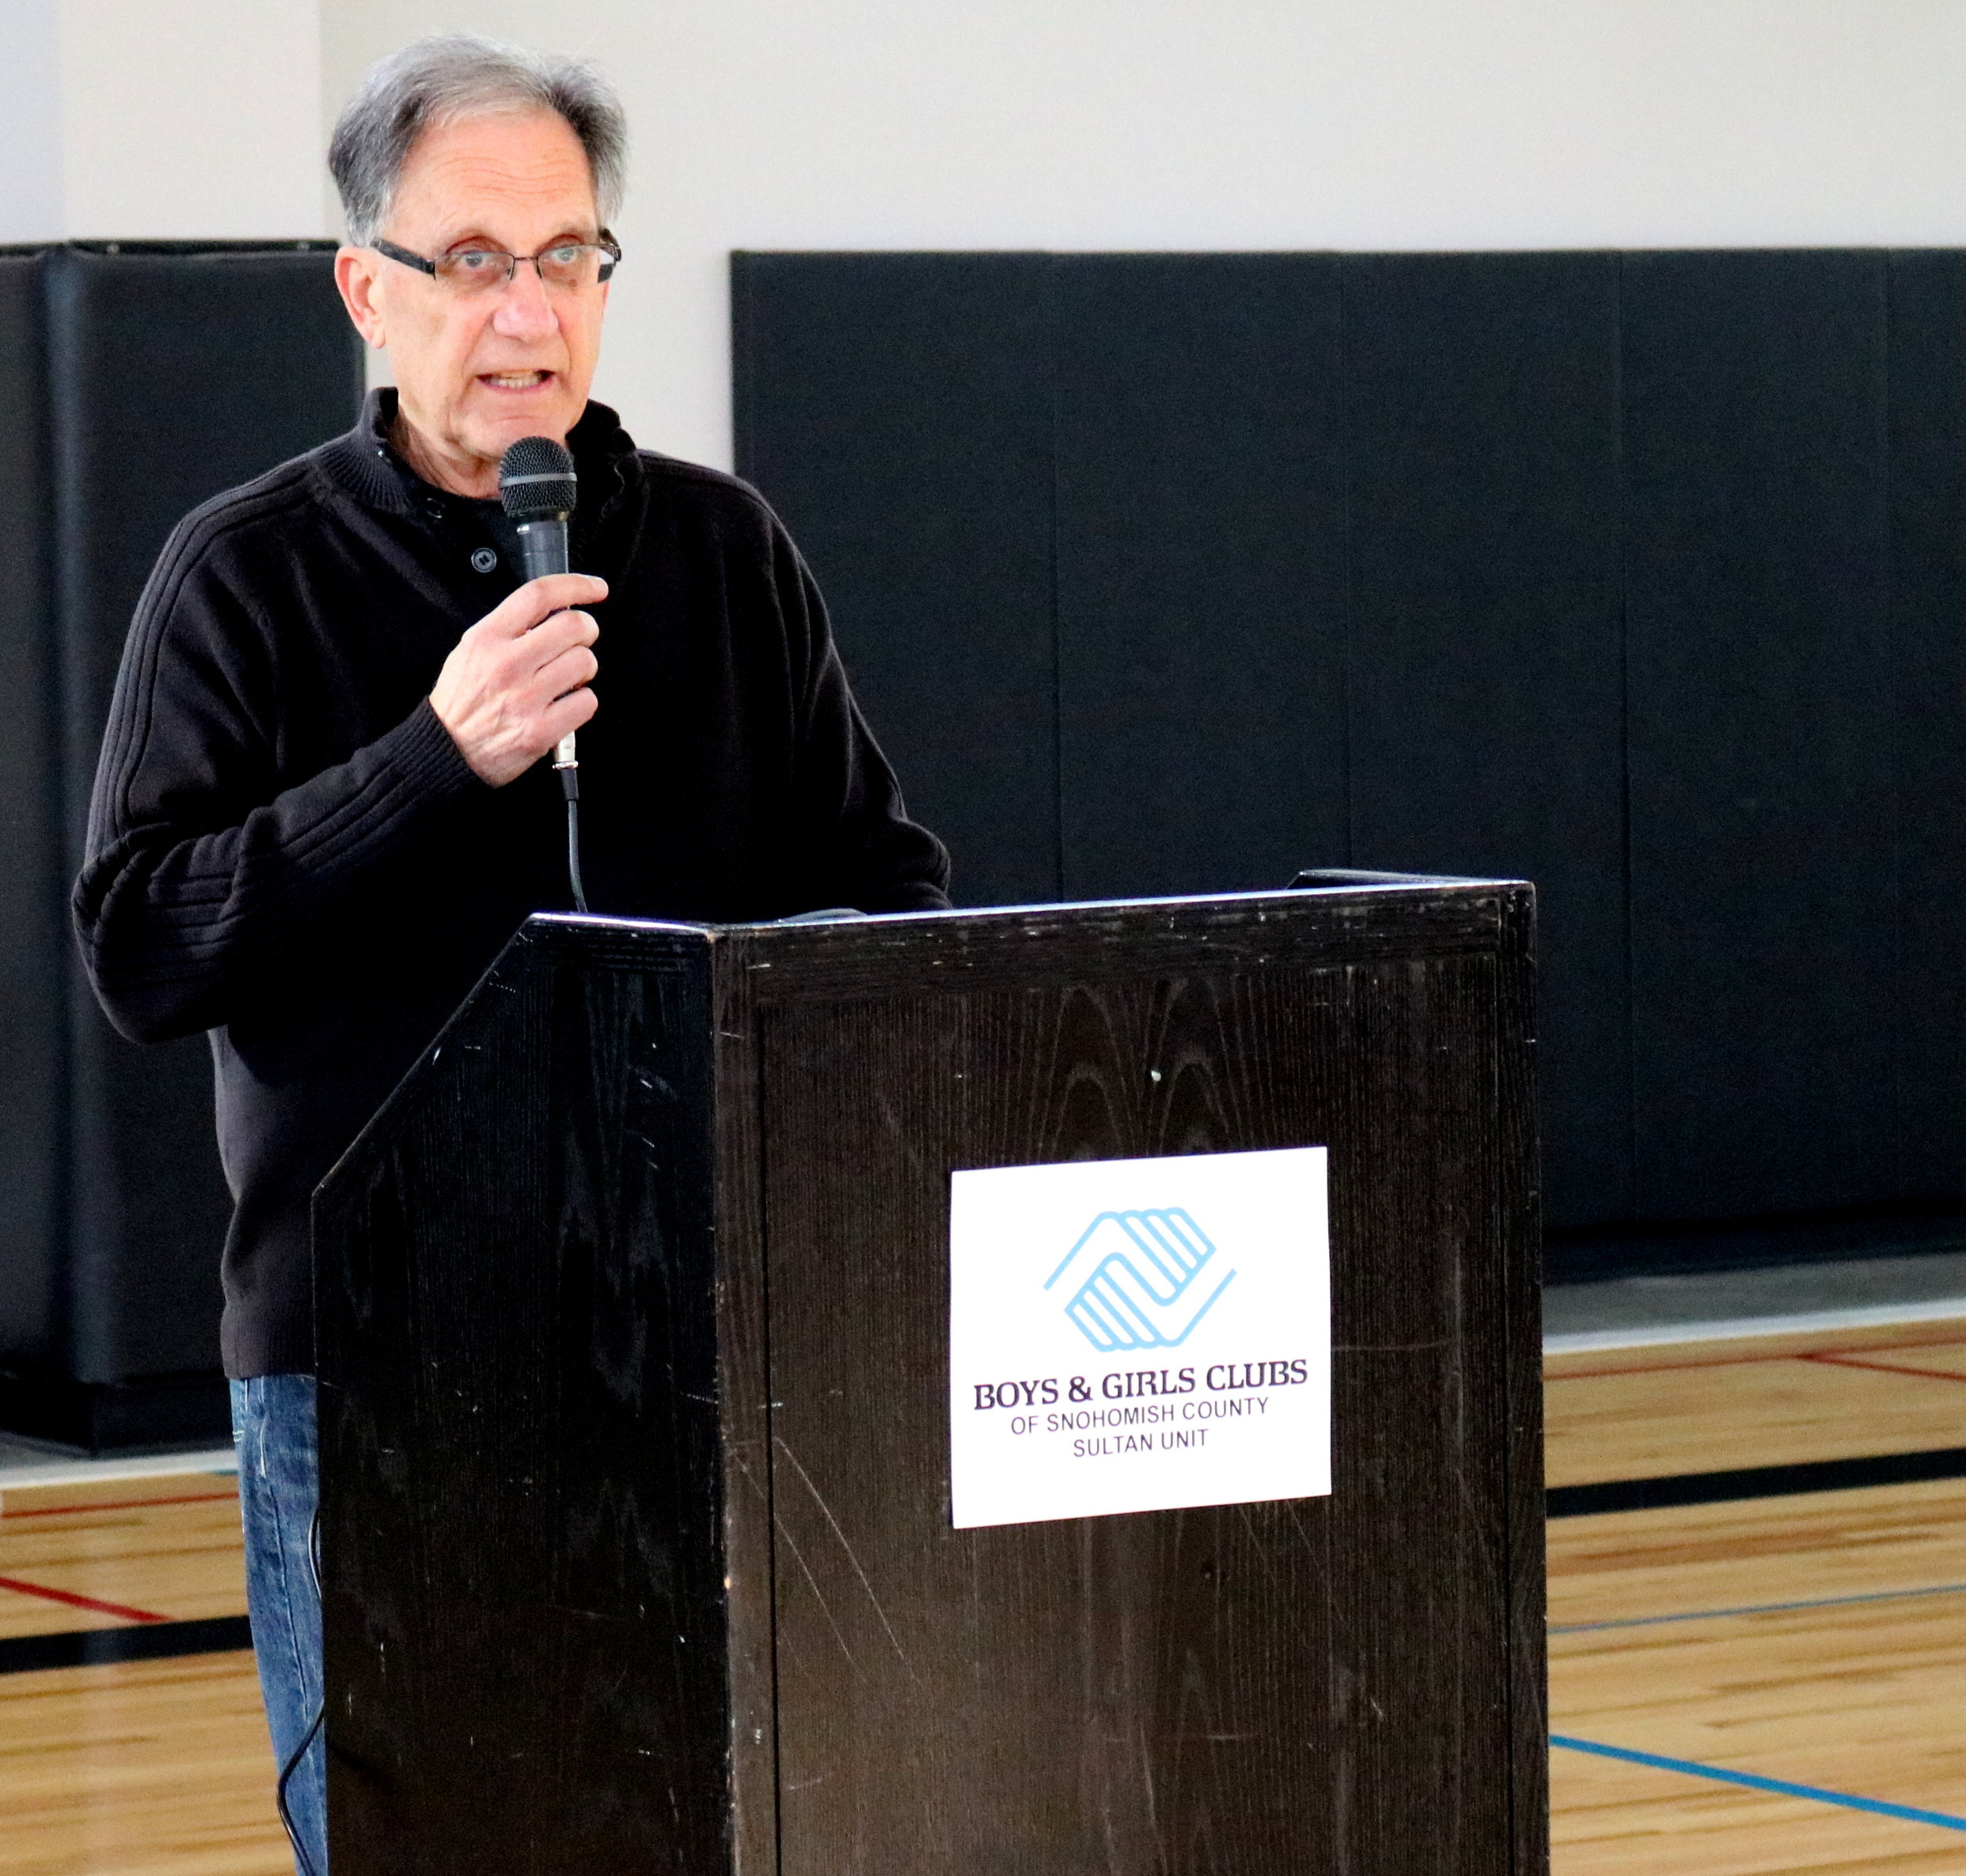 Bill Tsoukalas:  Director of the Snohomish County Boys and Girls Club